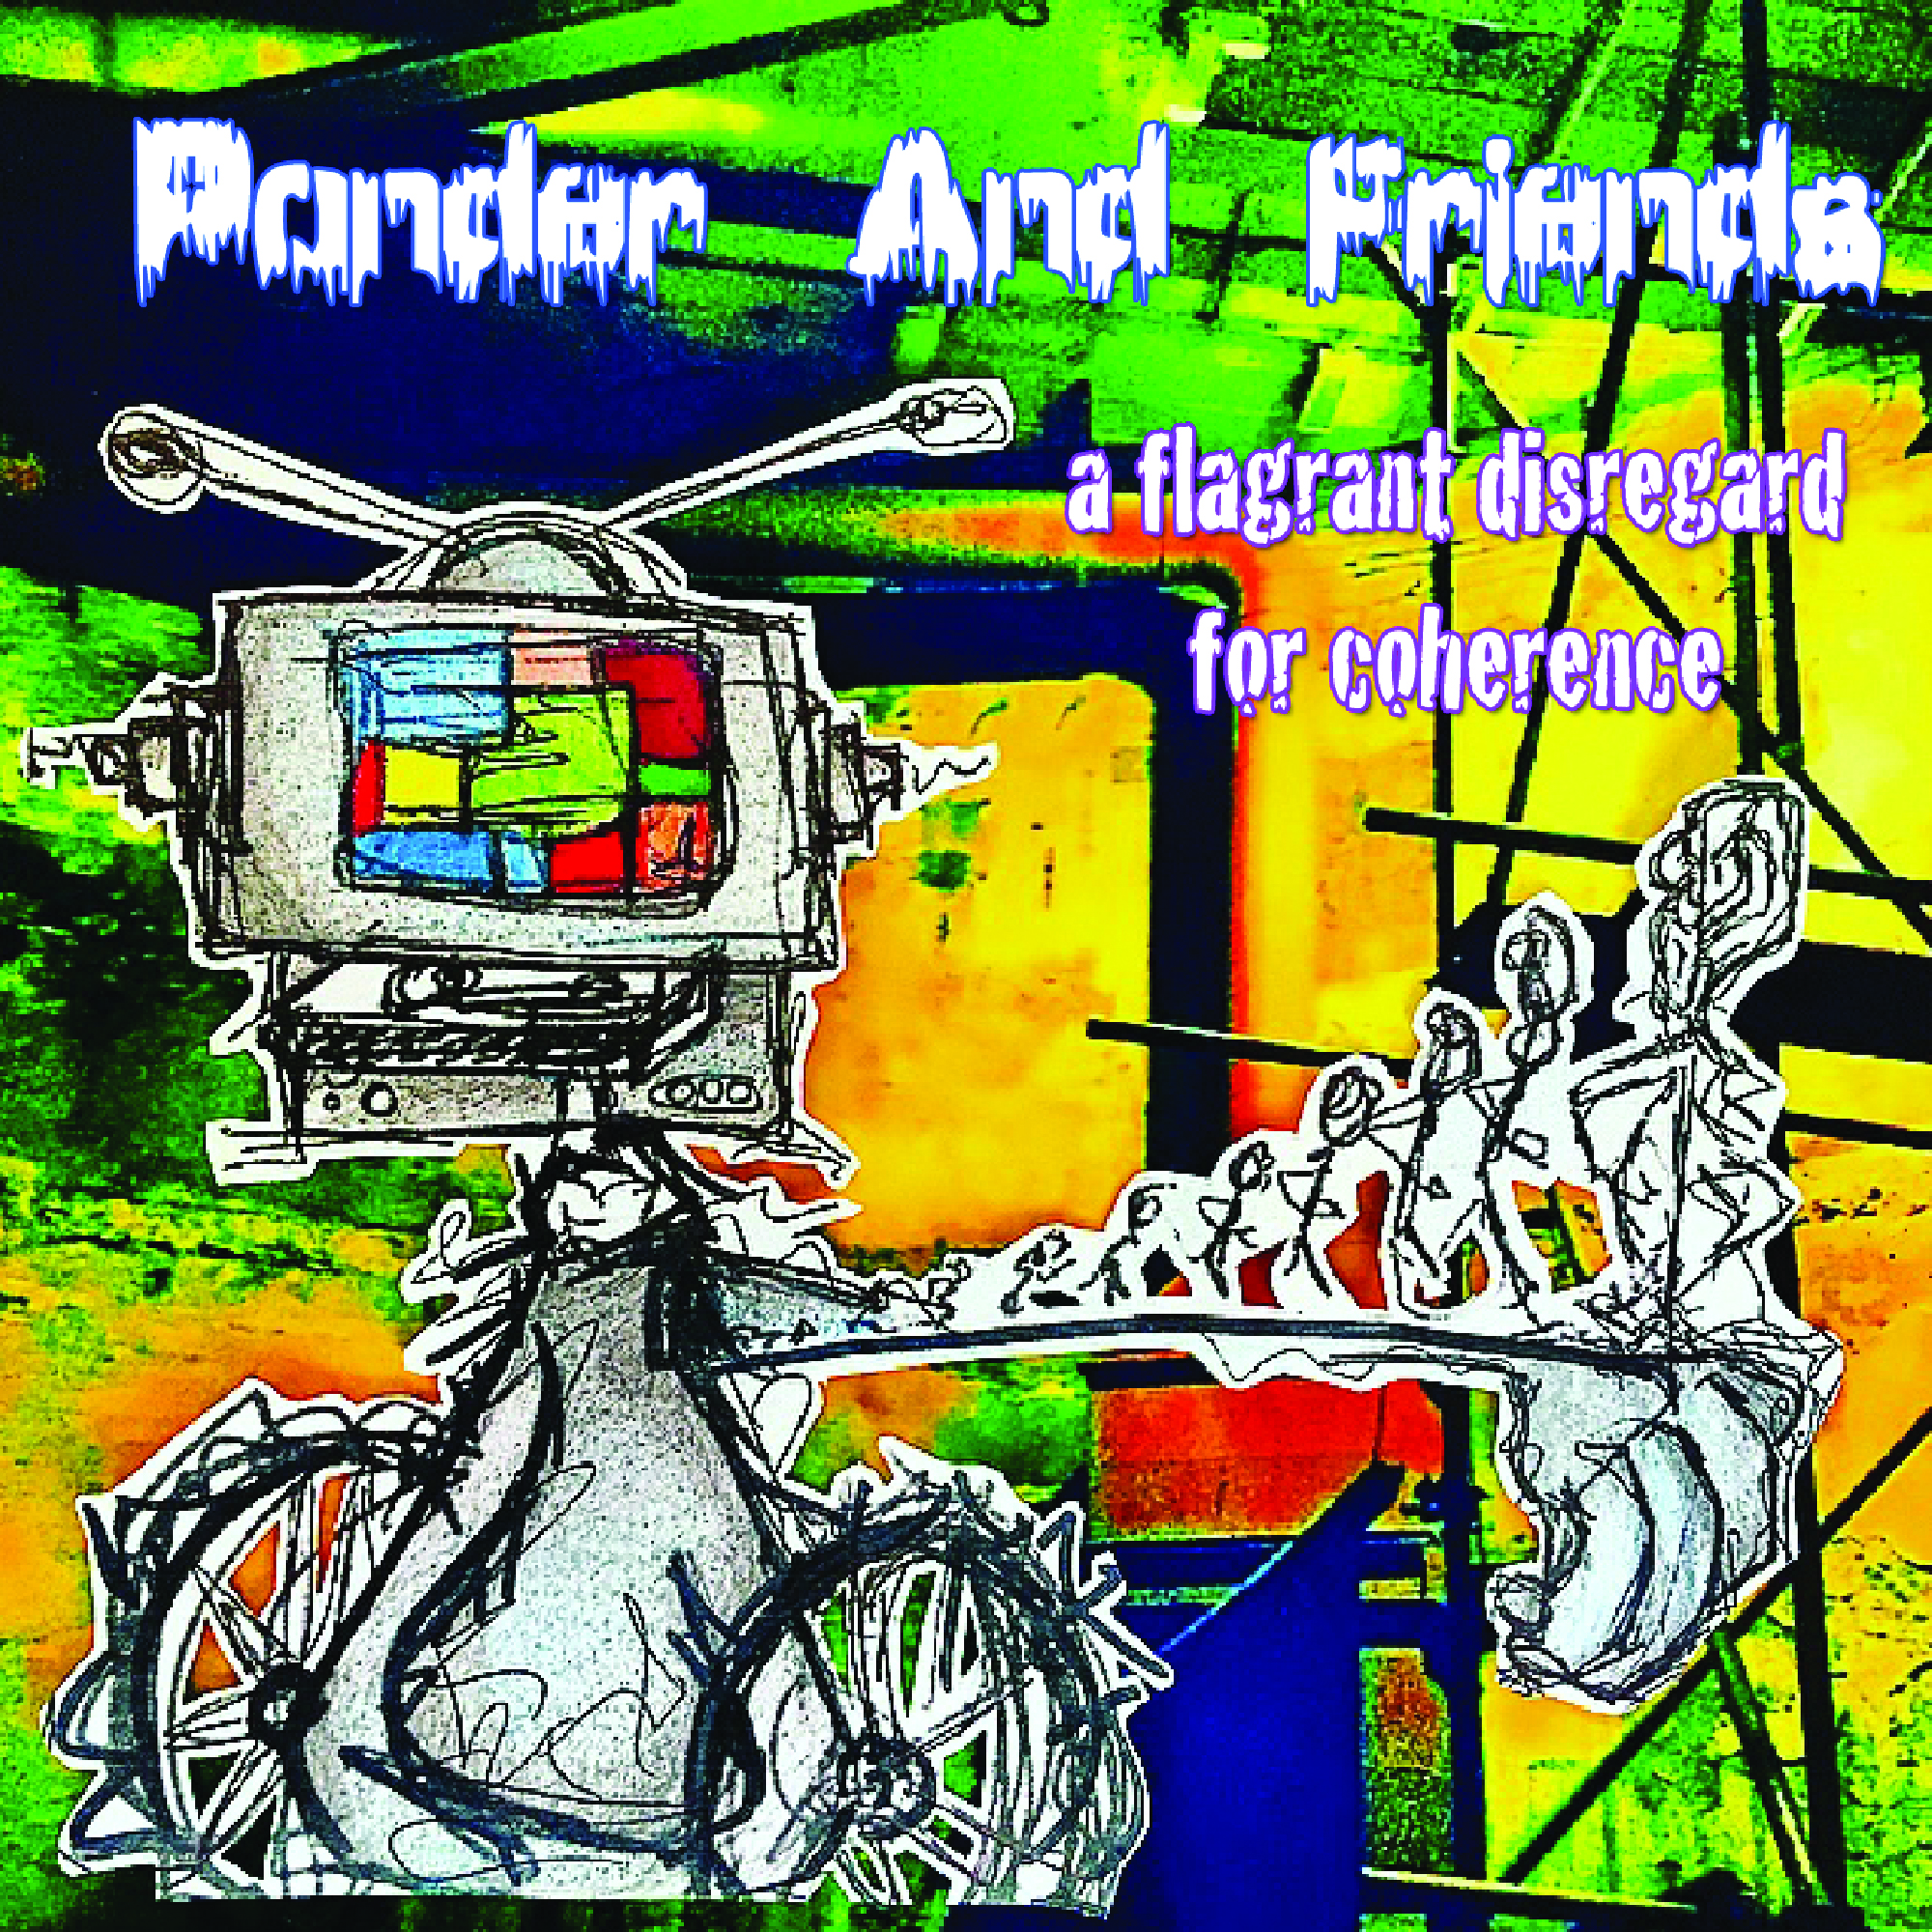 [KFA087] Ponder & Friends - A Flagrant Disregard For Coherence (Digital Only)